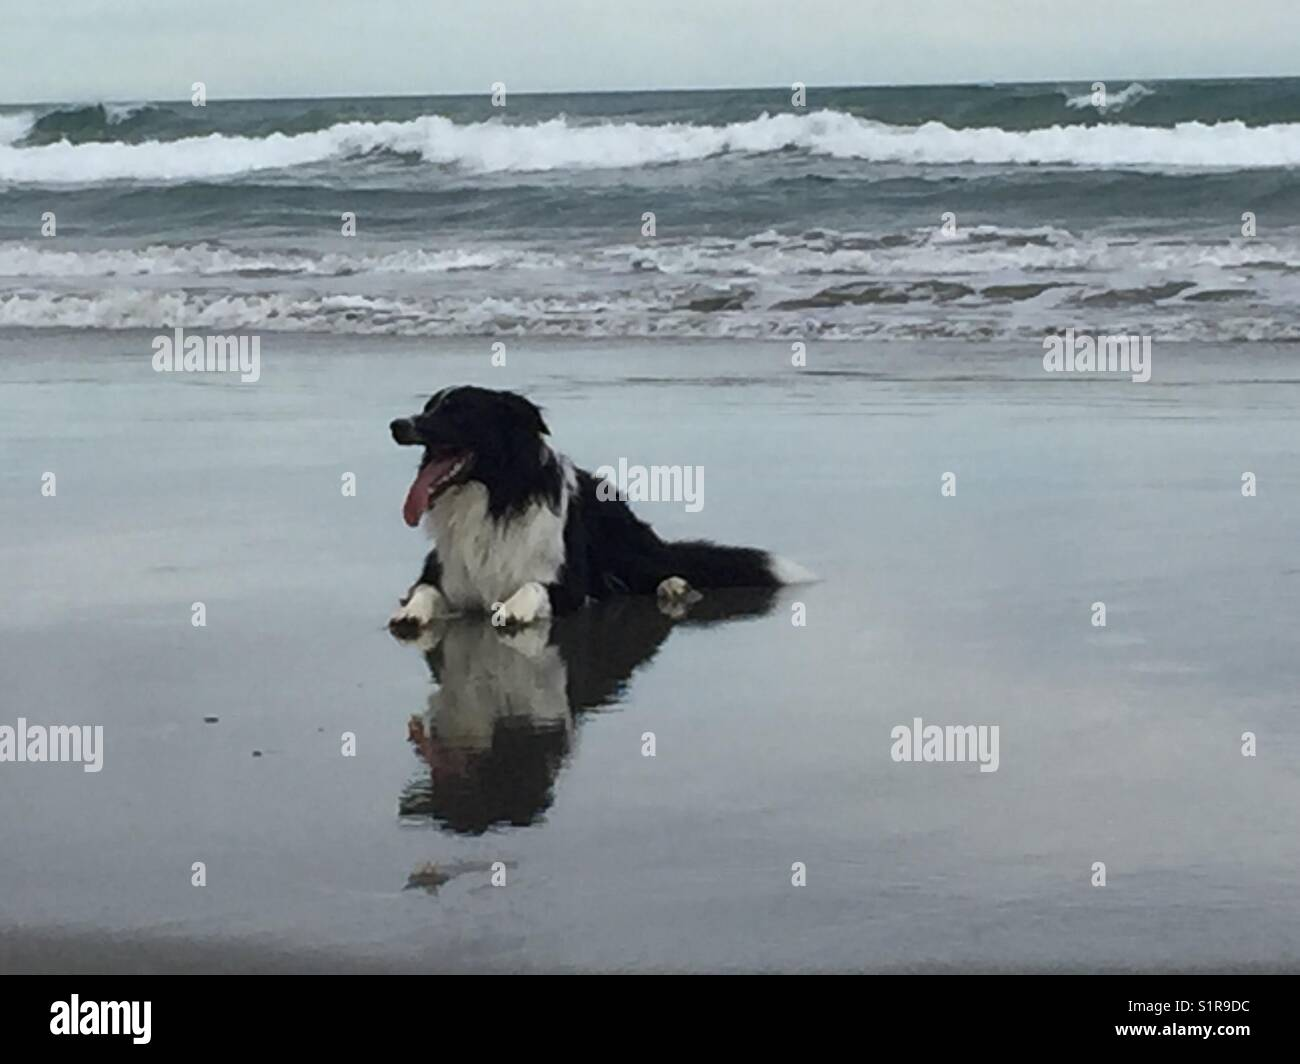 Dog on beach with reflection in water - Stock Image